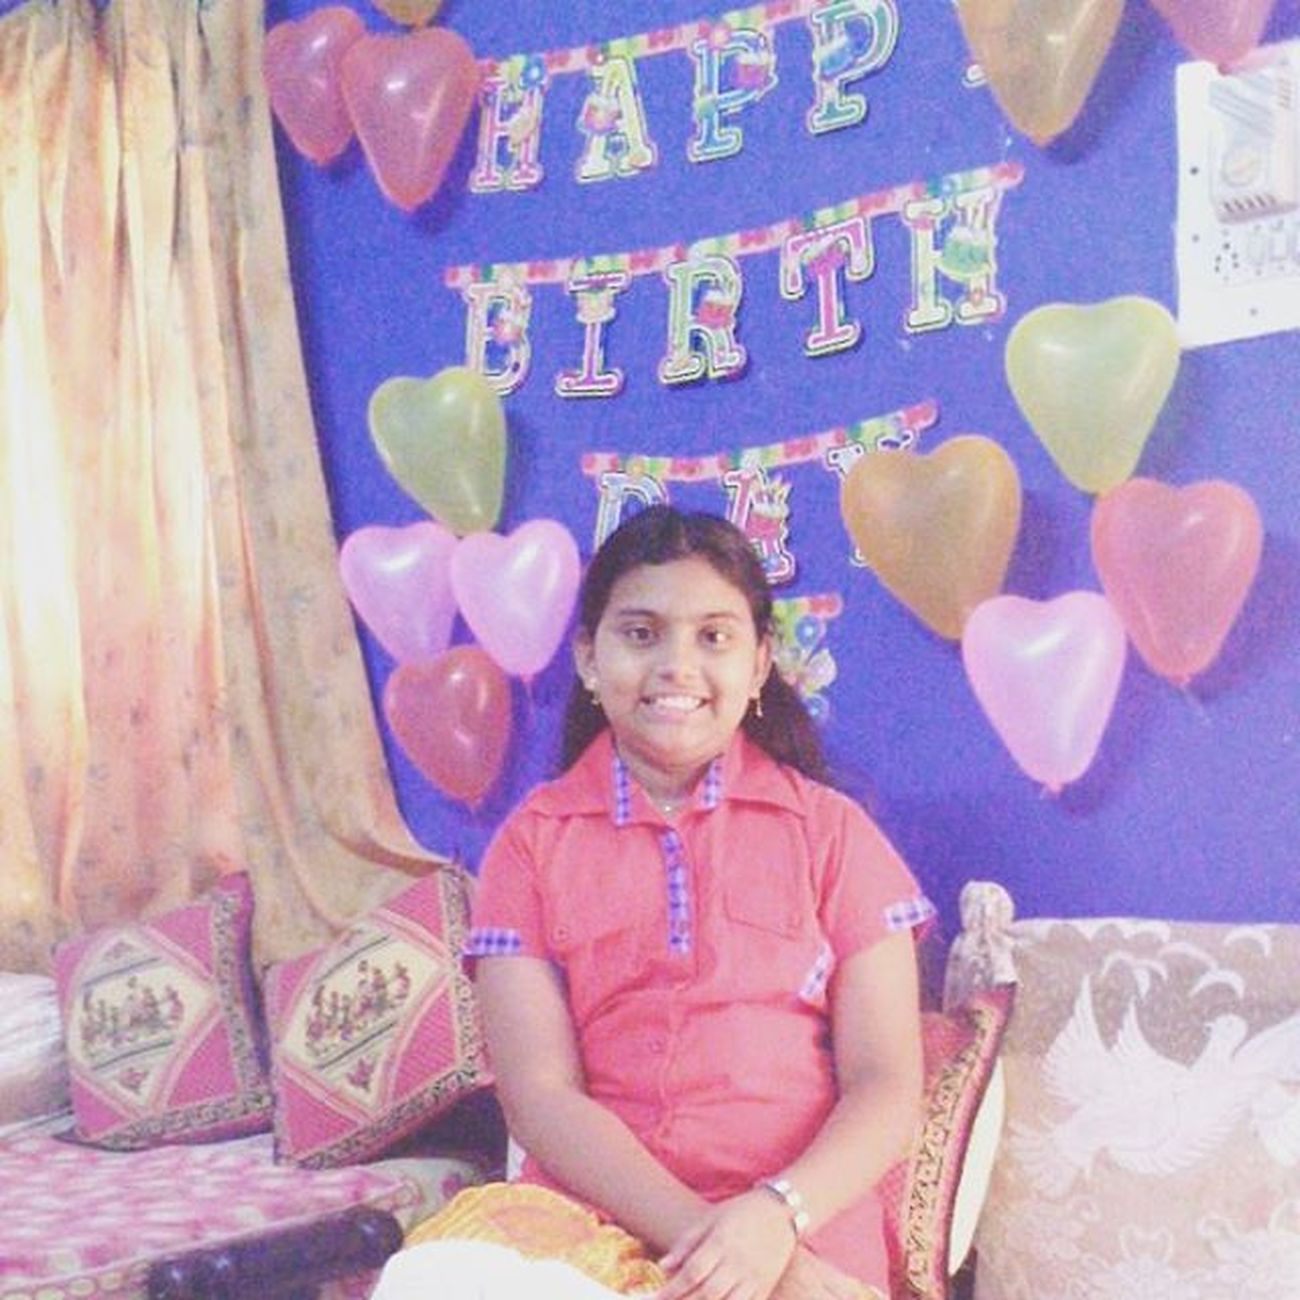 Post 118 Today is super special and magical day! Cause it's your birthday! A very happy birthday, Niece! HappyBirthday STONA